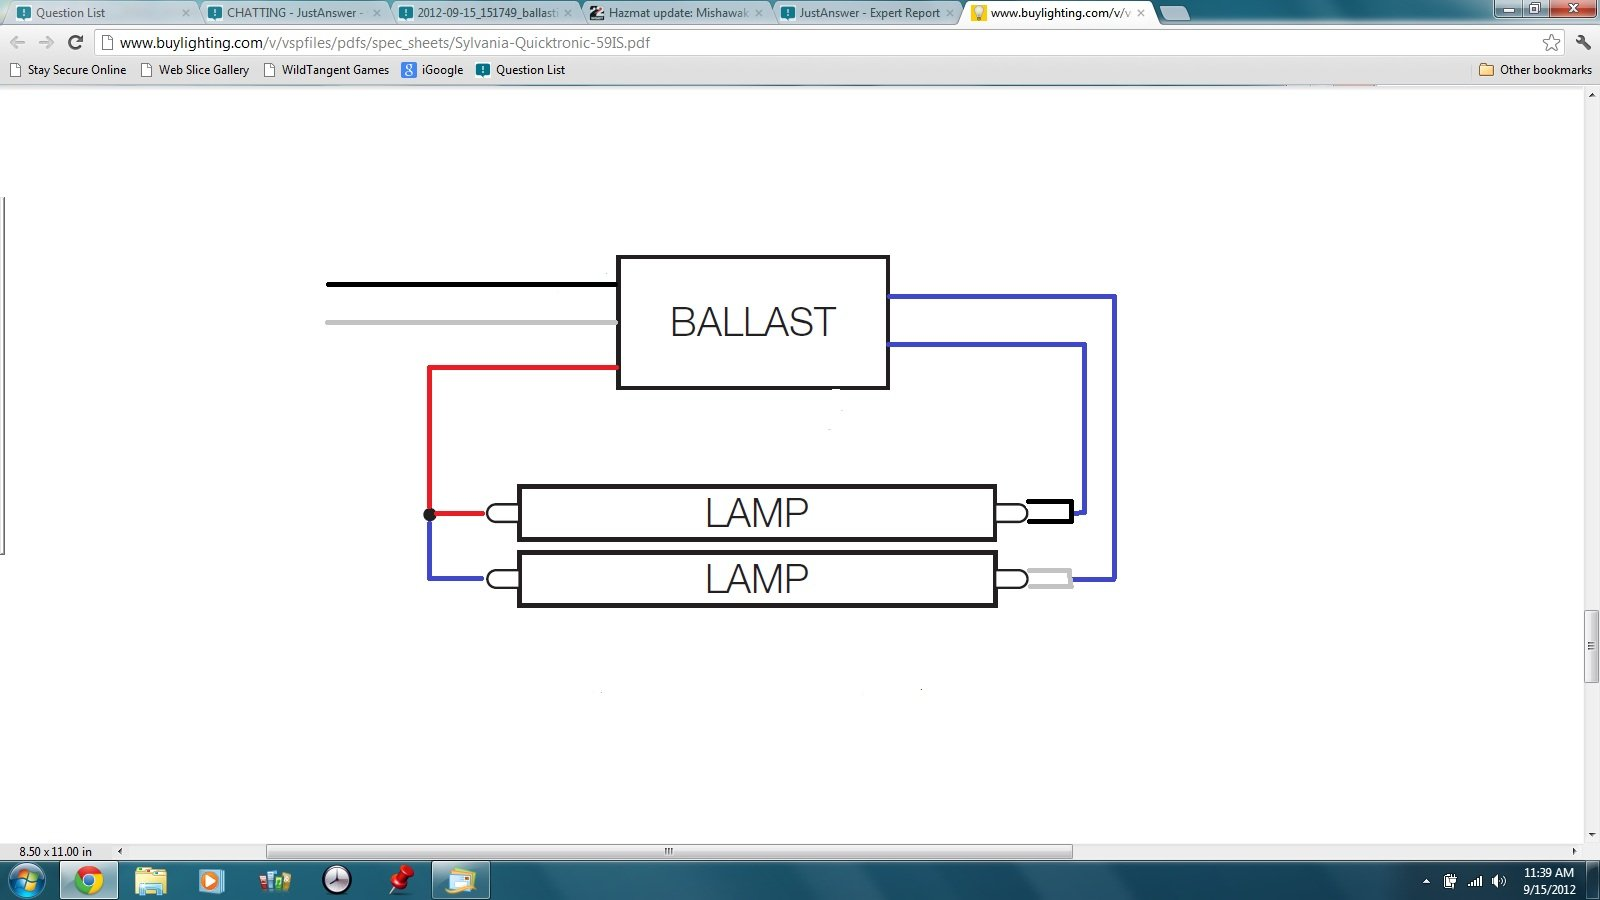 2 lamp t12 ballast wiring diagram single lamp t12 ballast wiring diagram what is the ballast wiring set up when converting from a ... #1